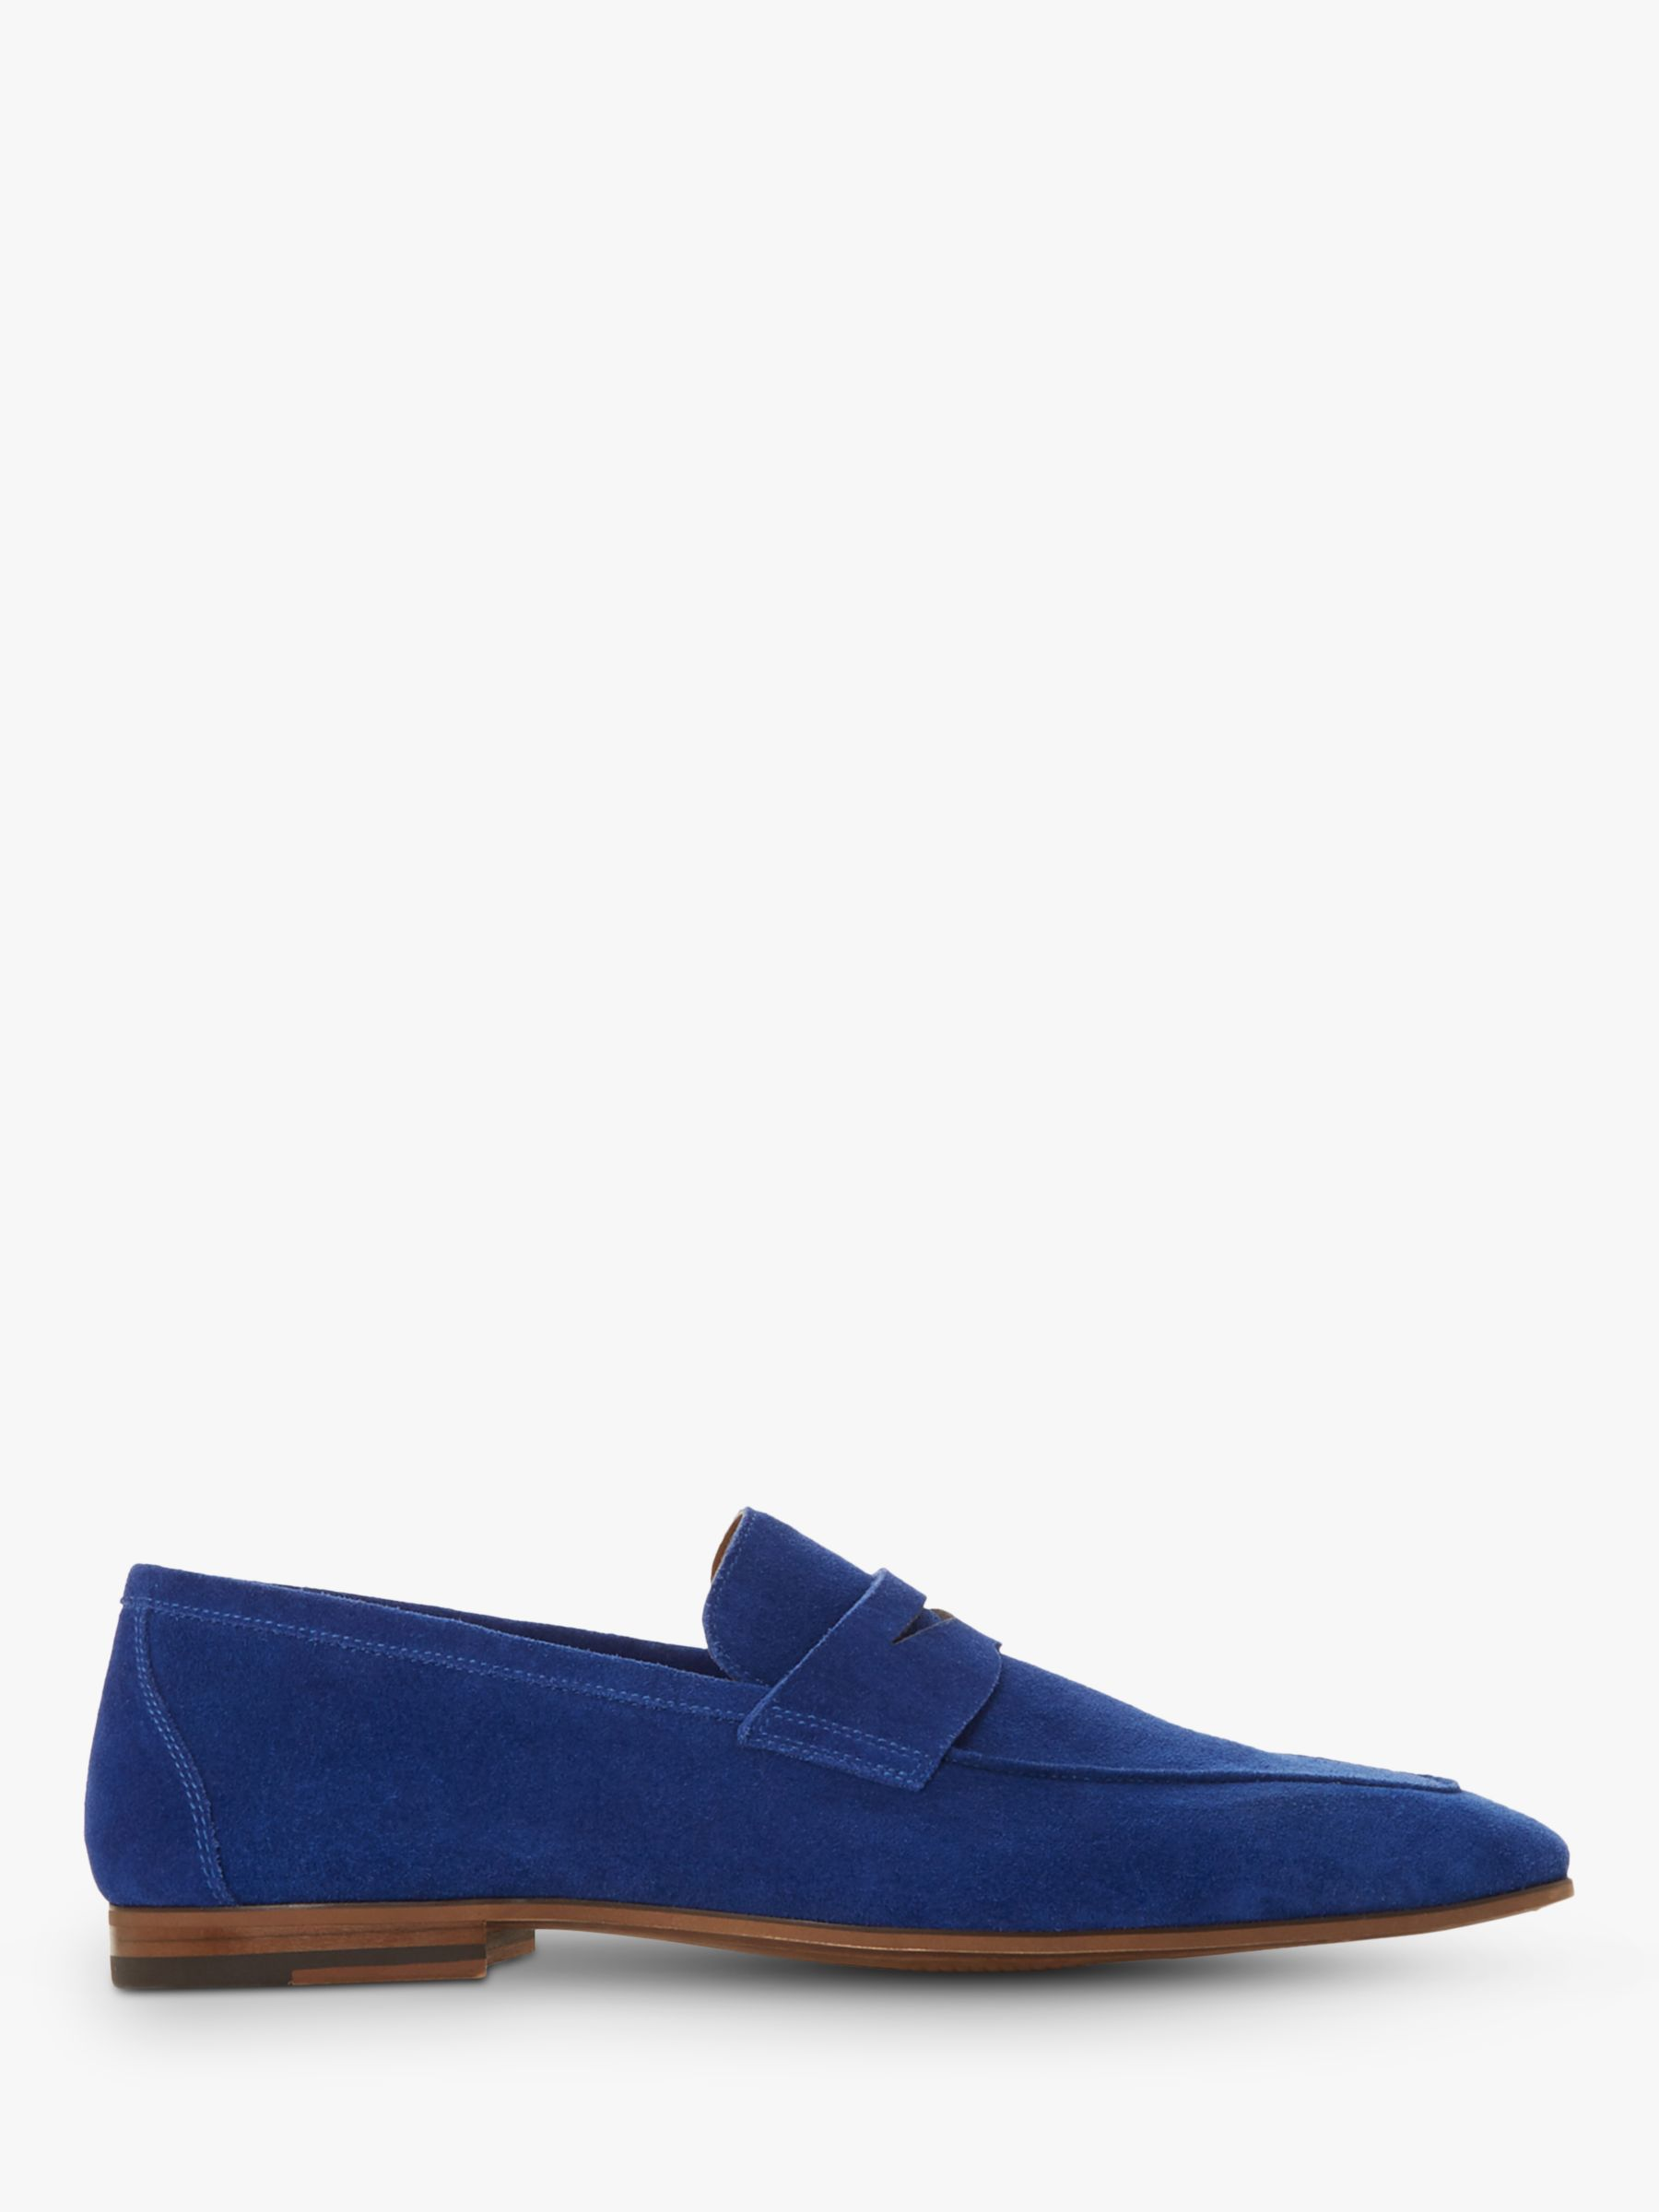 Dune Dune Shelburne Suede Loafers